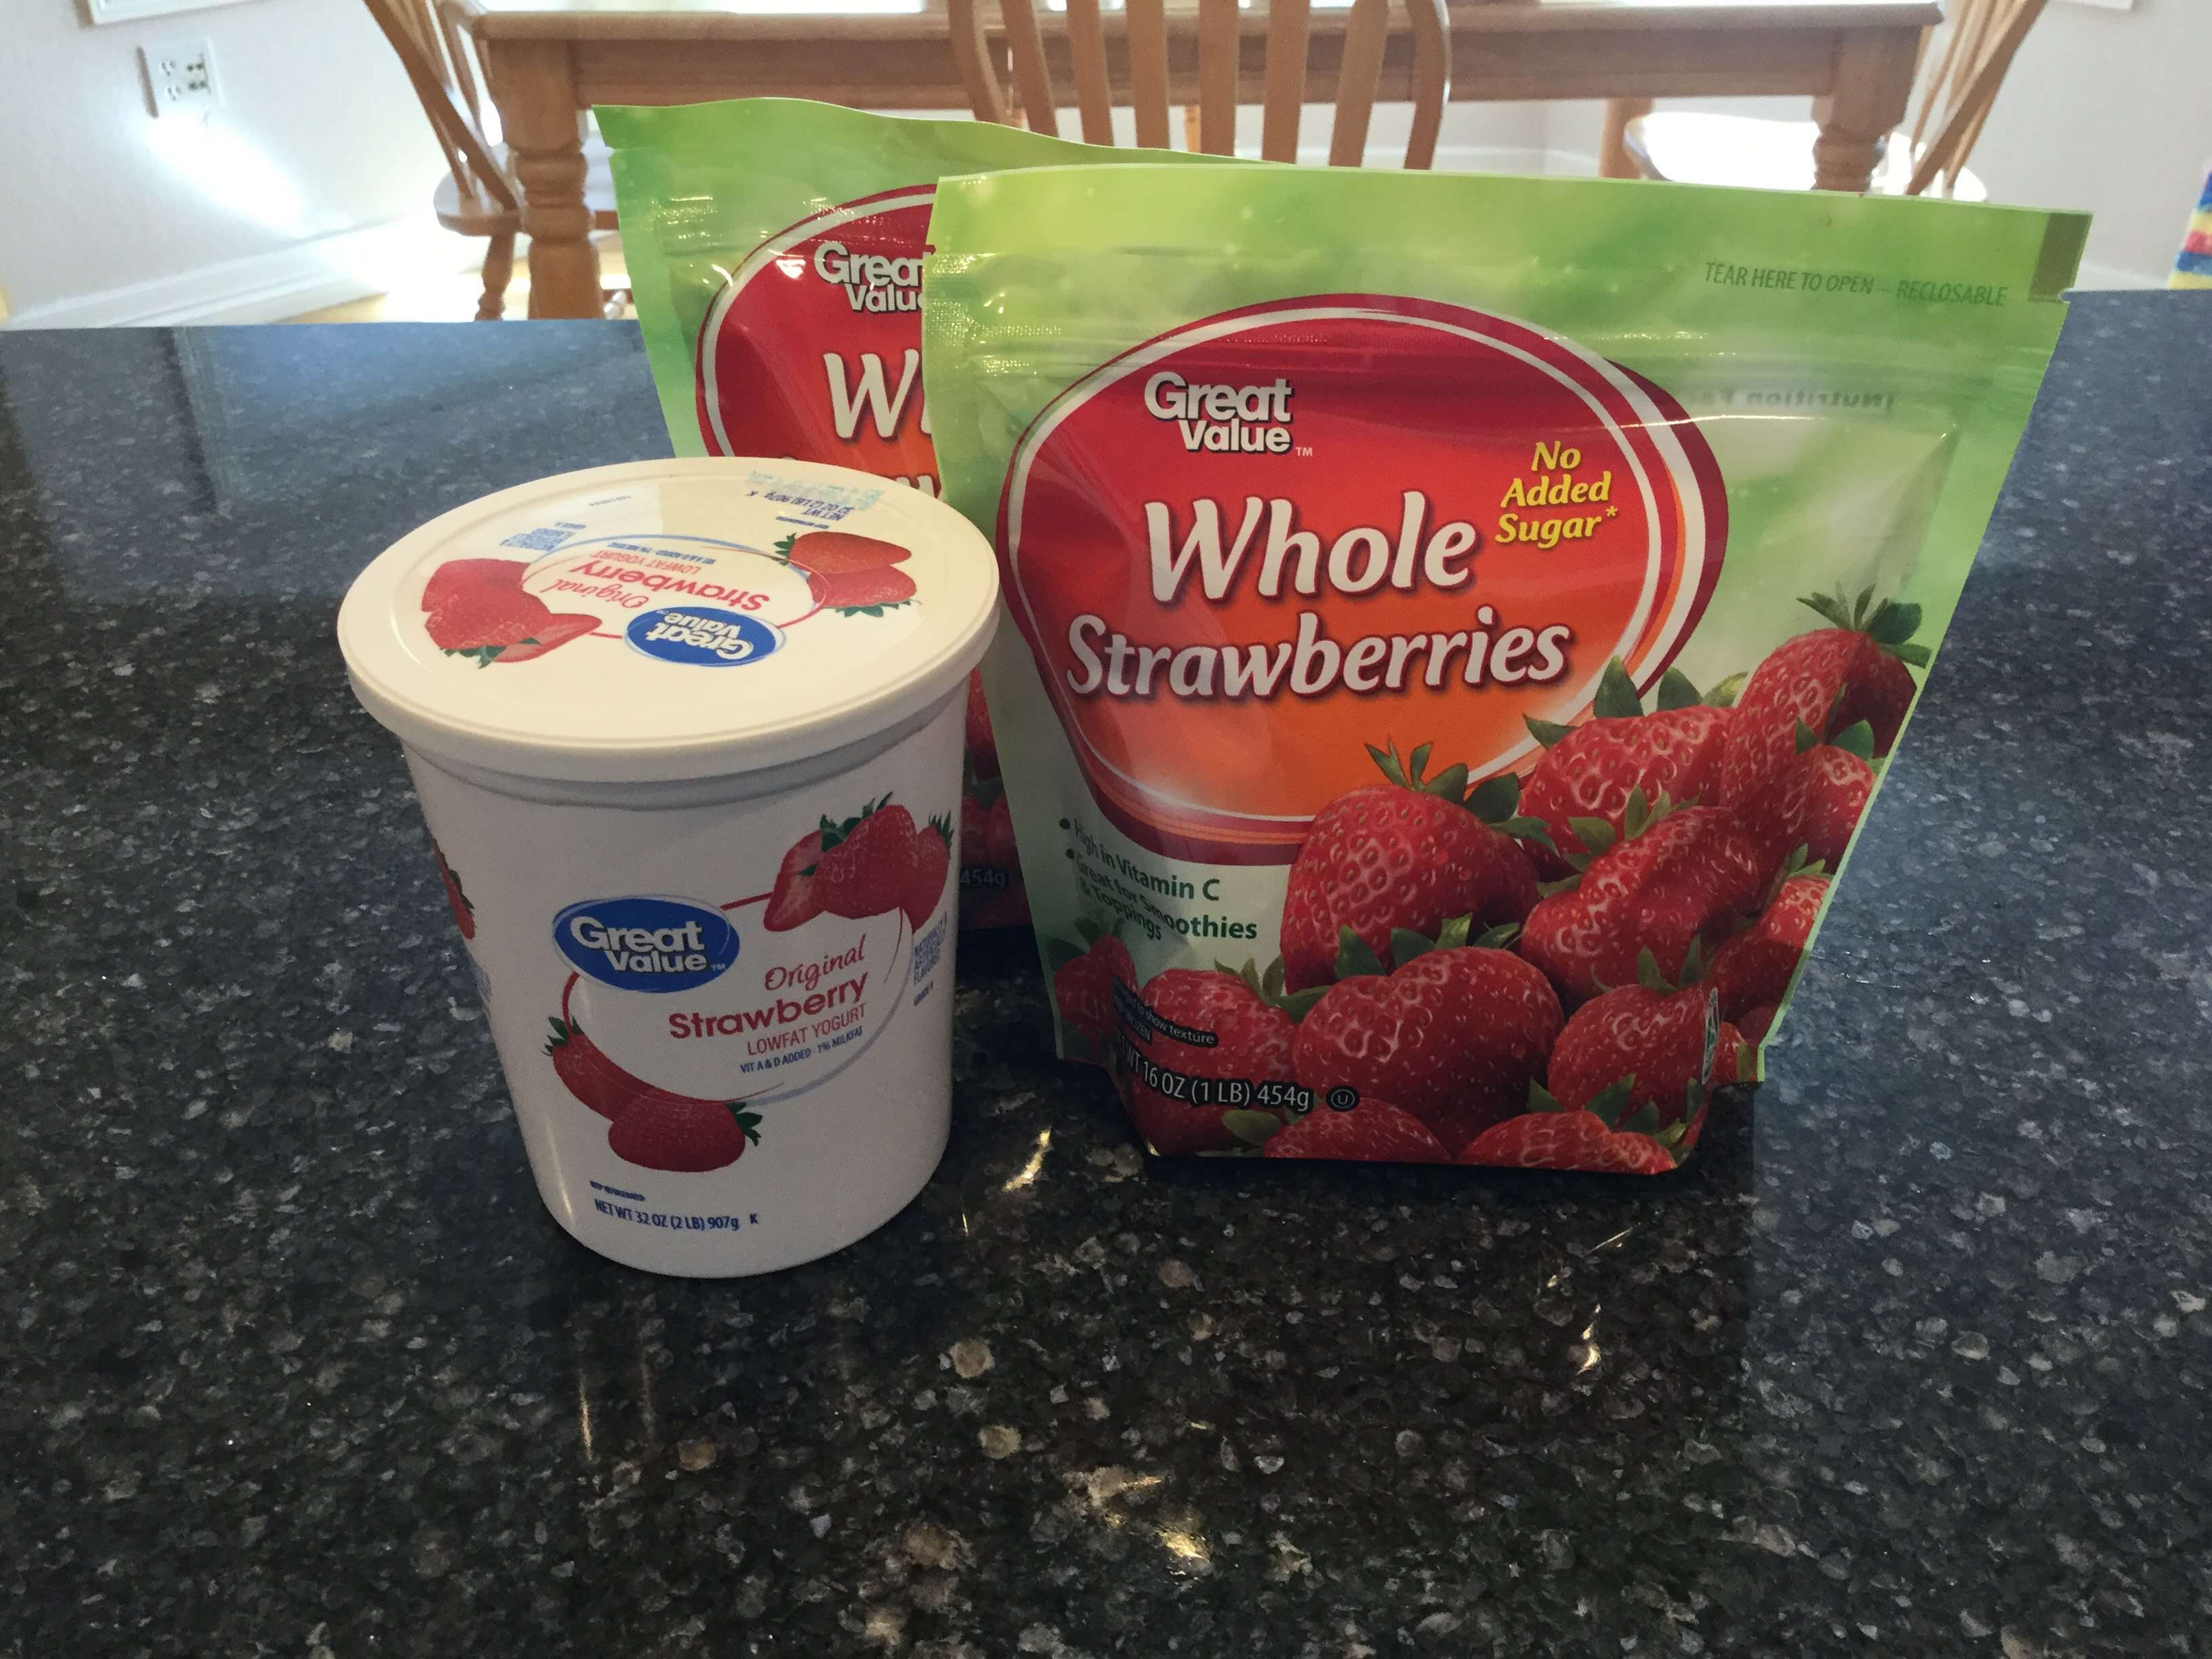 This recipe is adjustable to your own desires and amounts. I use 32 oz. low fat strawberry yogurt & 2 - 16 oz bags unsweetened frozen strawberries (thawed)